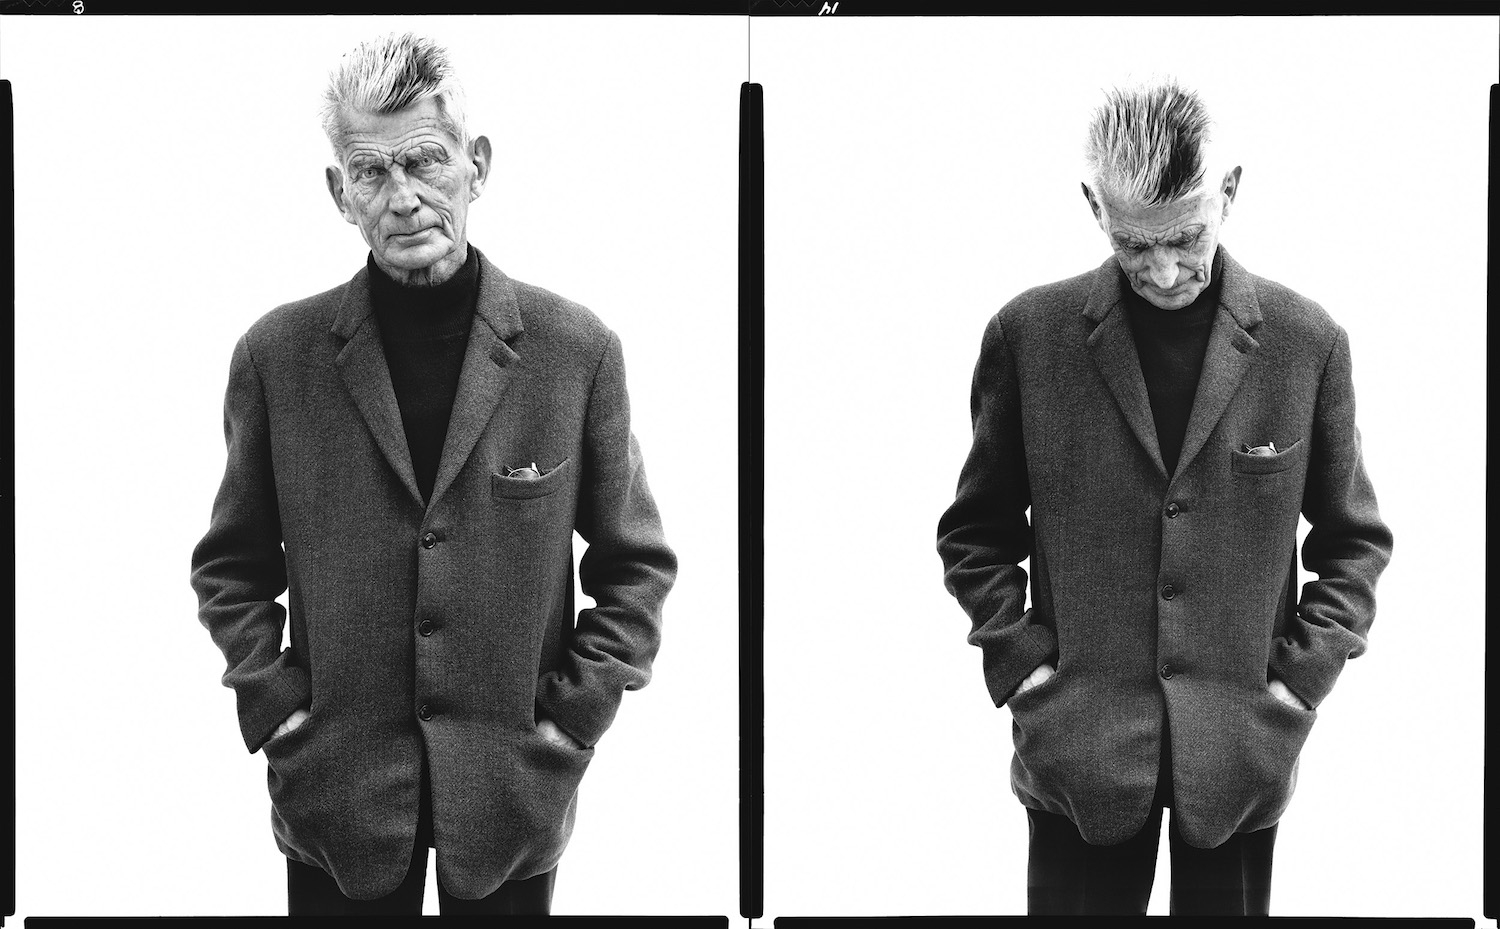 Samuel Beckett, writer, Paris, France, April 13, 1979